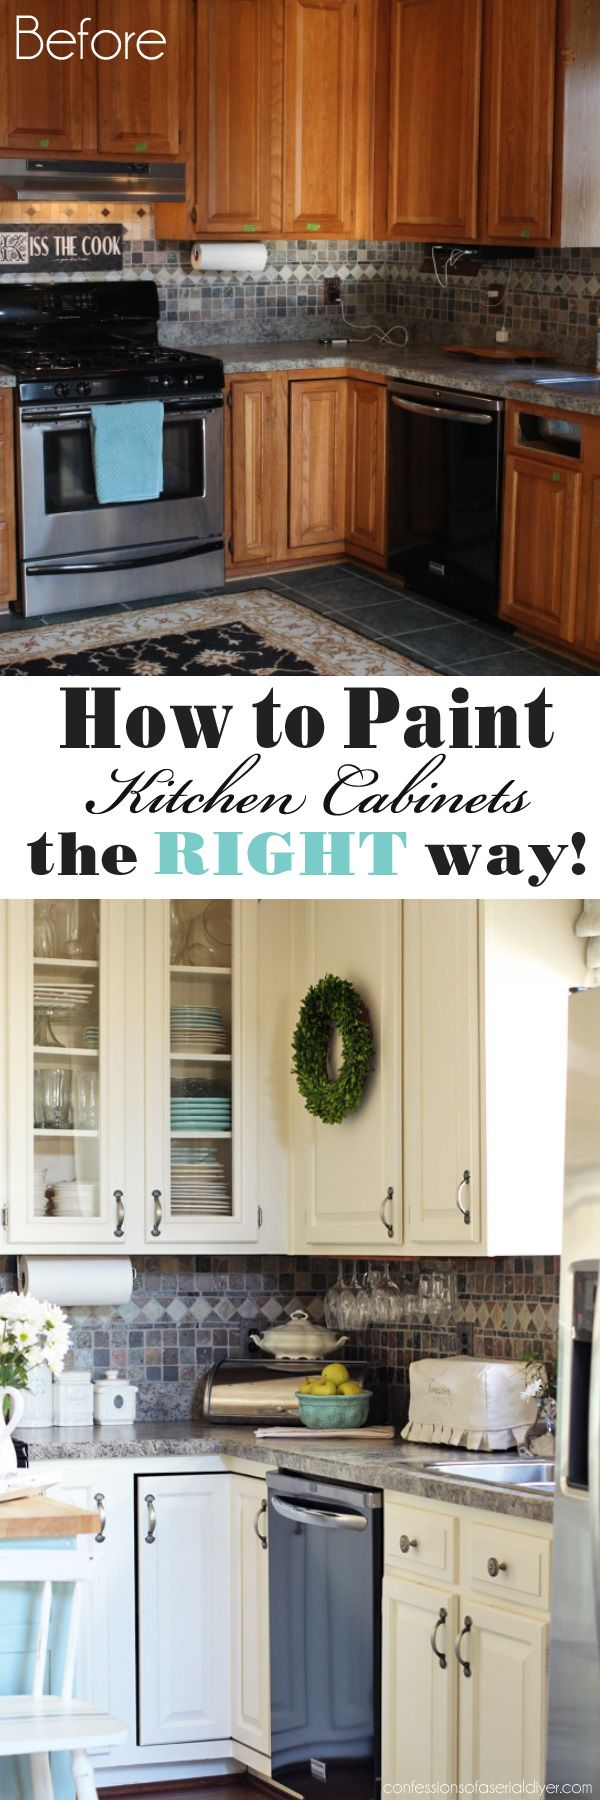 painted cupboards building a kitchen cabinet How to Paint Kitchen Cabinets the RIGHT way from Confessions of a Serial Do it